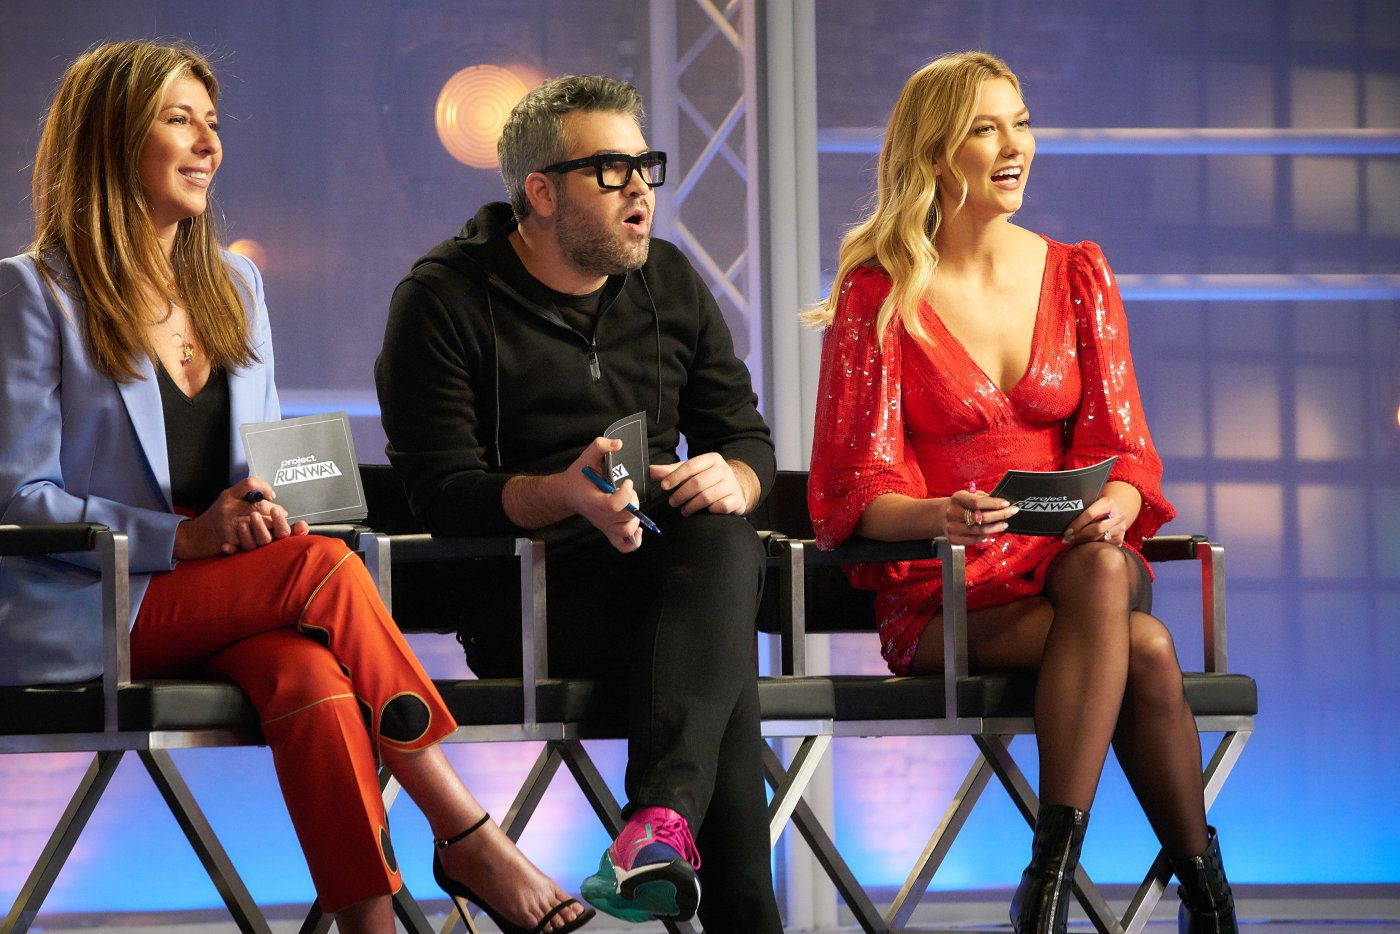 Project Runway Season 17, Episode 11 Recap: This Woman's Work